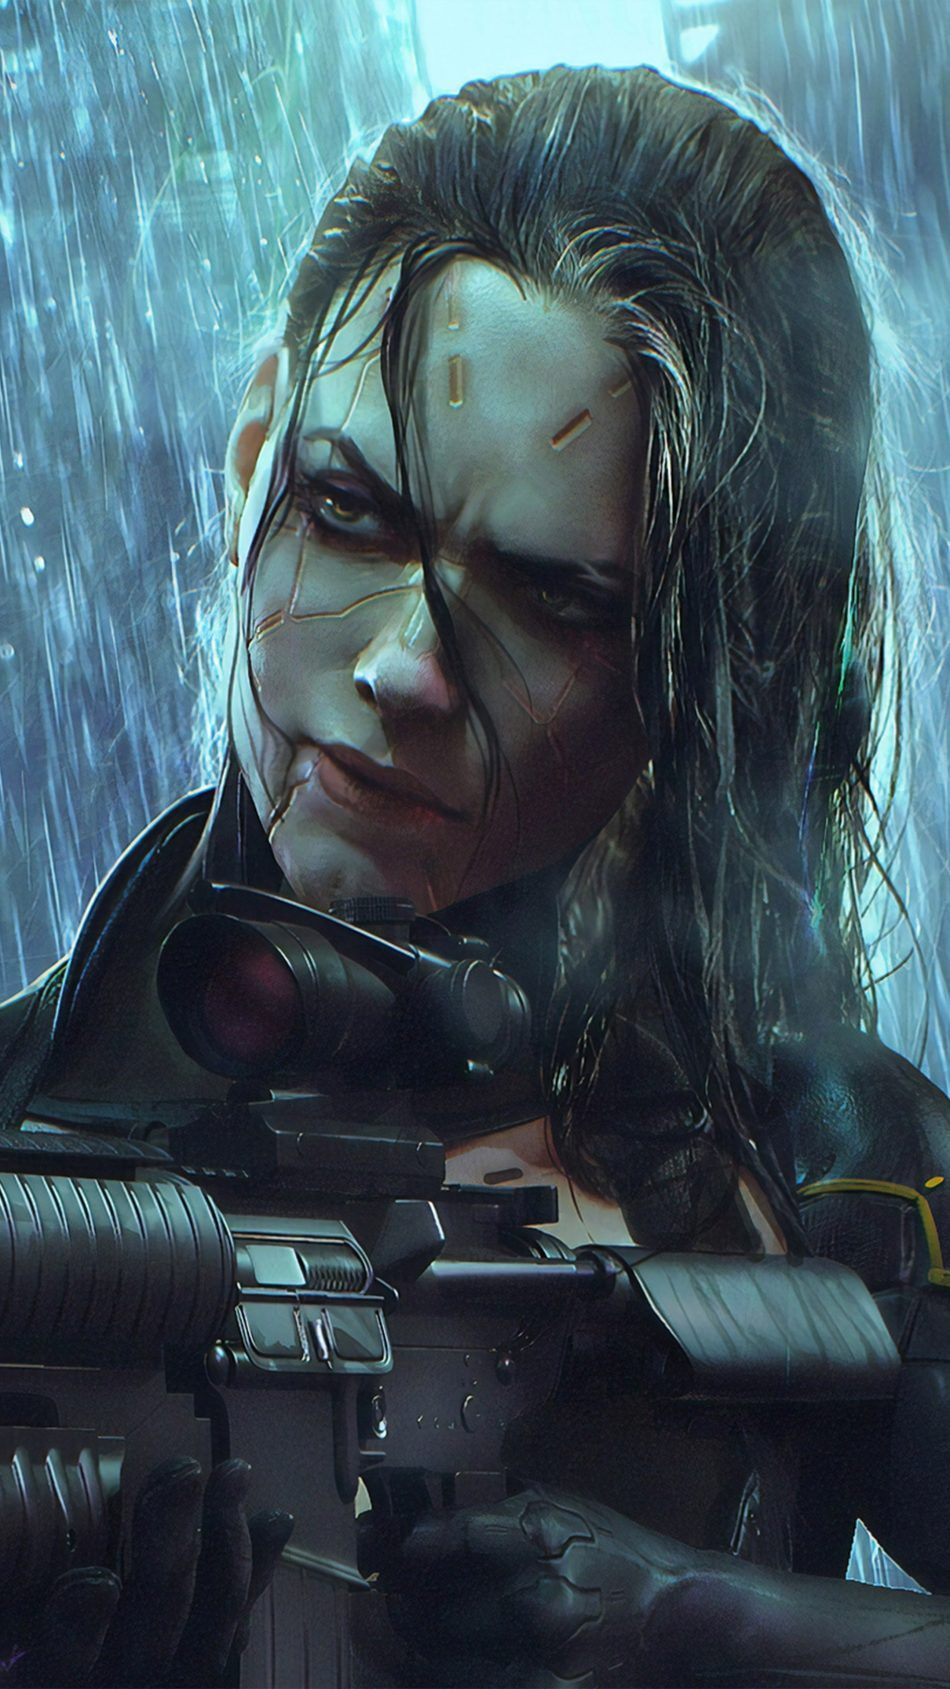 Woman Warrior Cyberpunk 2077 4K Ultra HD Mobile Wallpaper